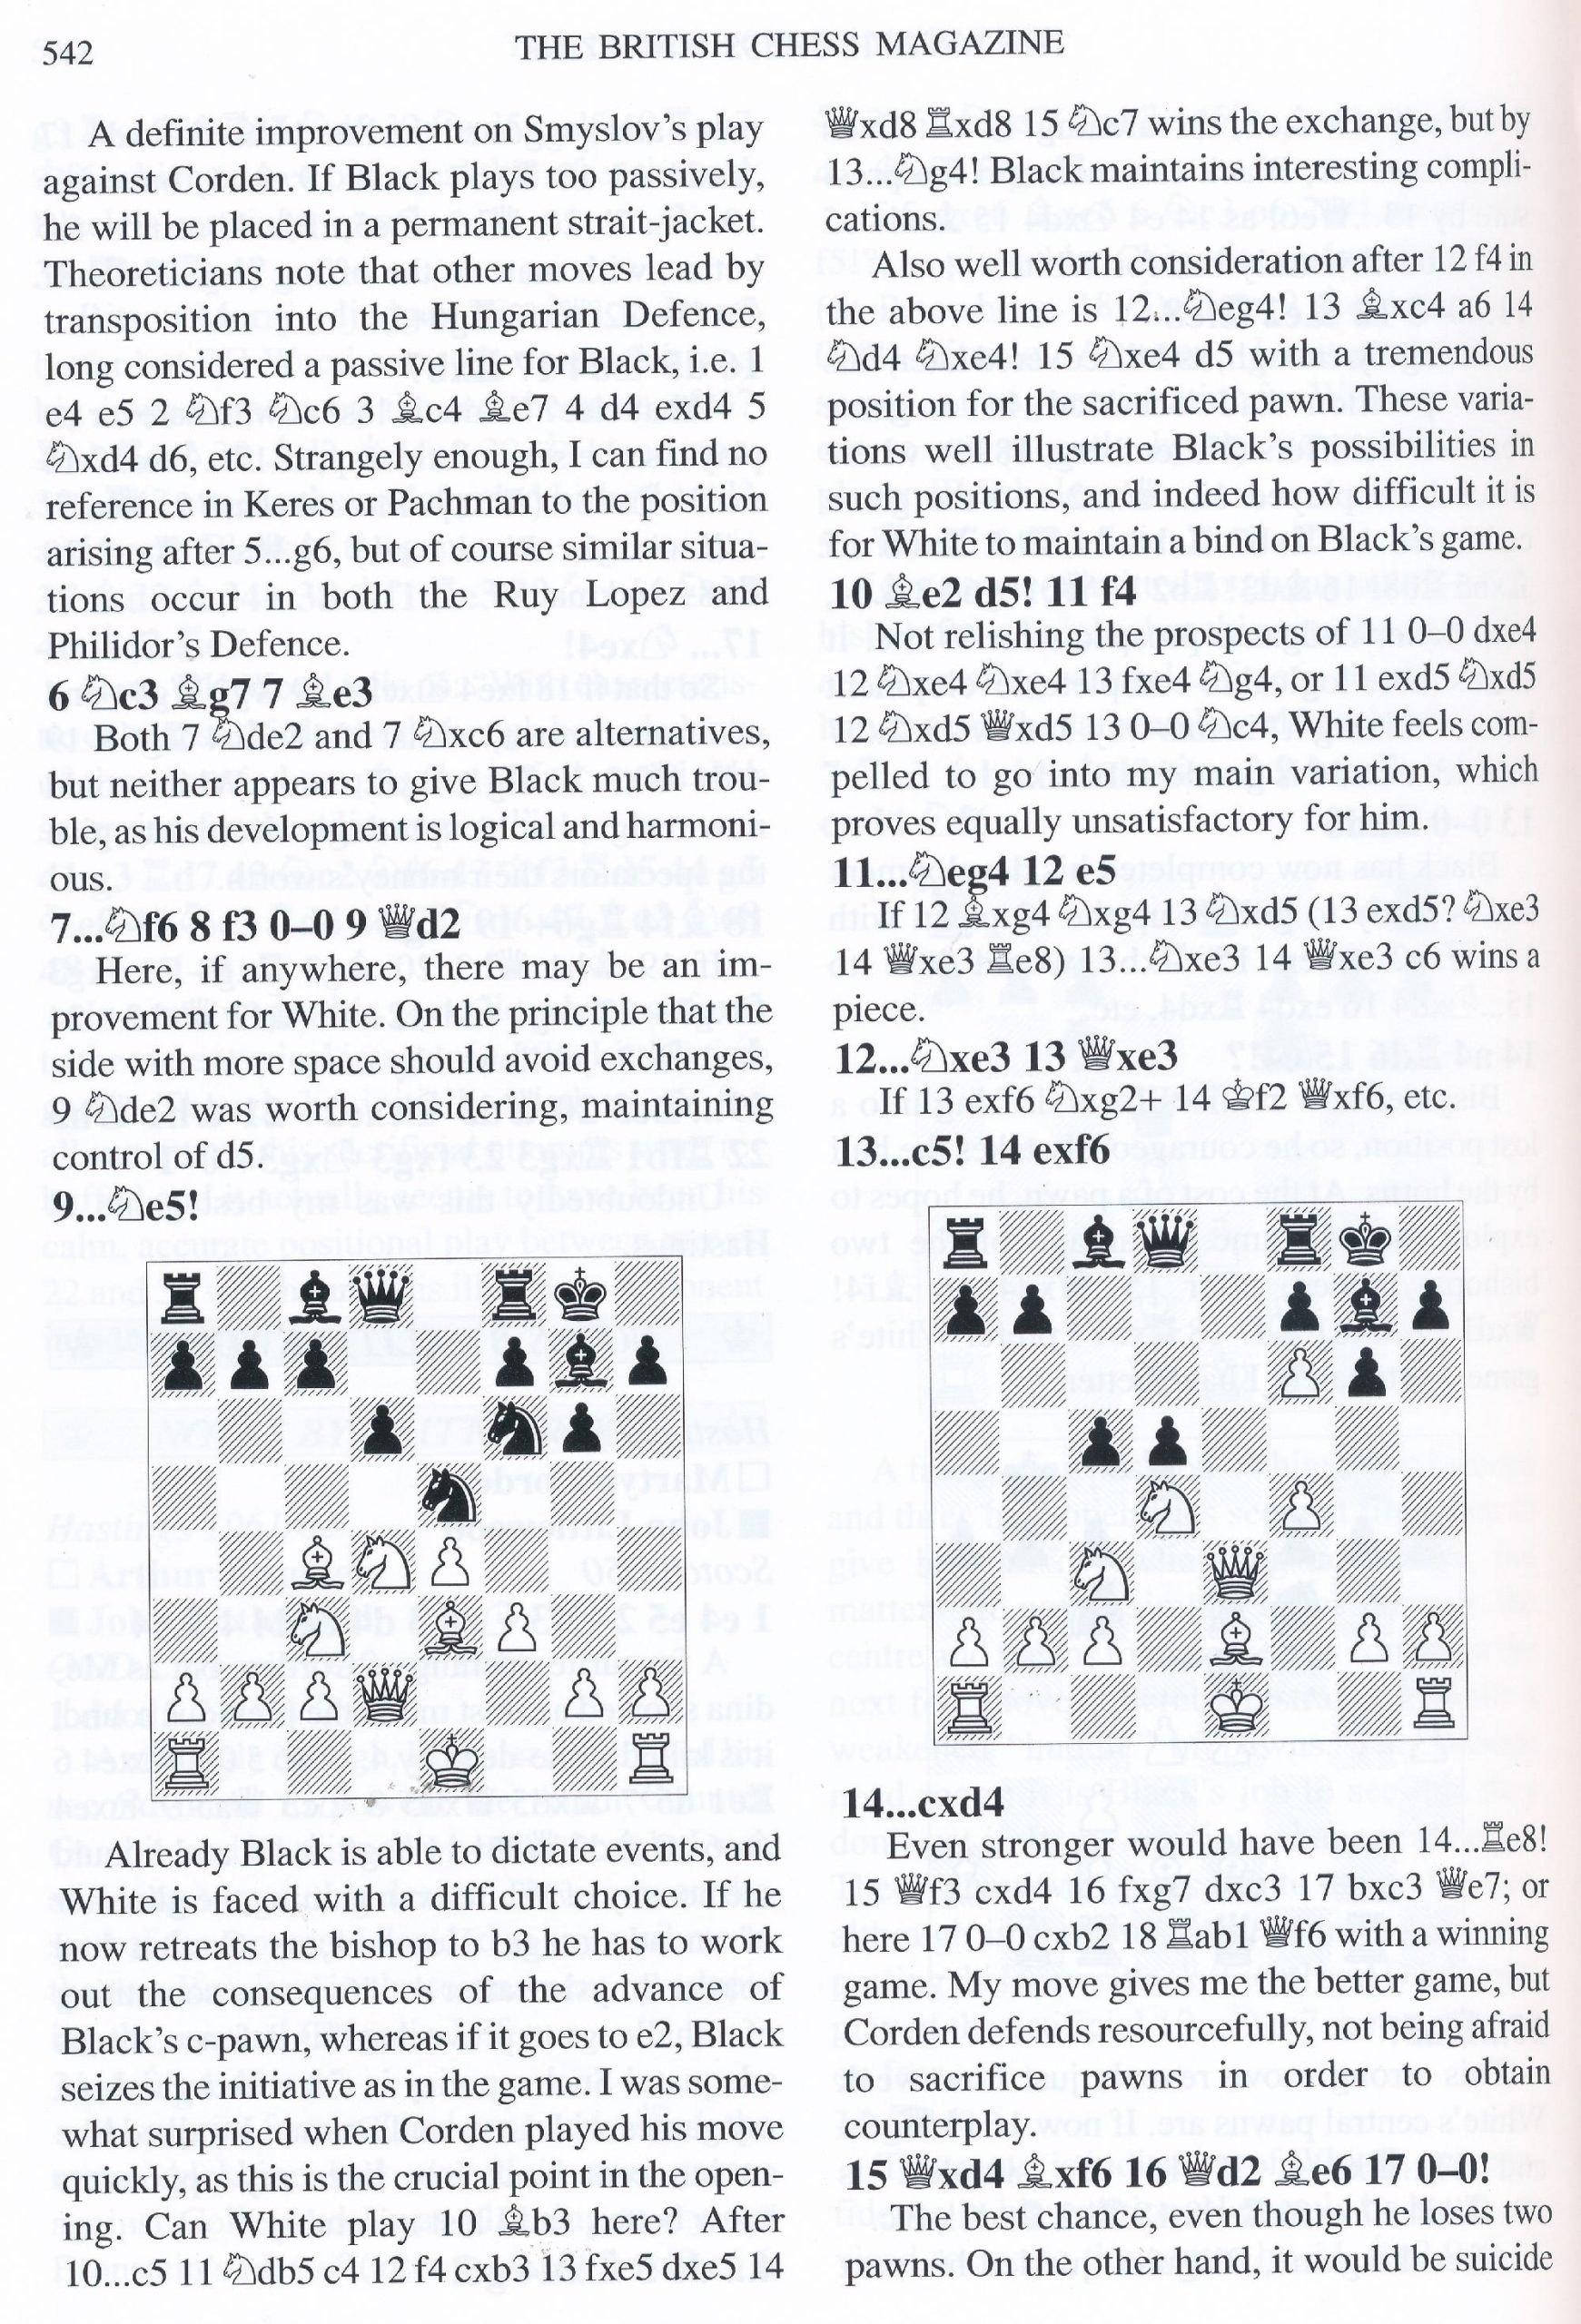 British Chess Magazine, Volume CXXIV (129), 2009, Number 10, October, page 542